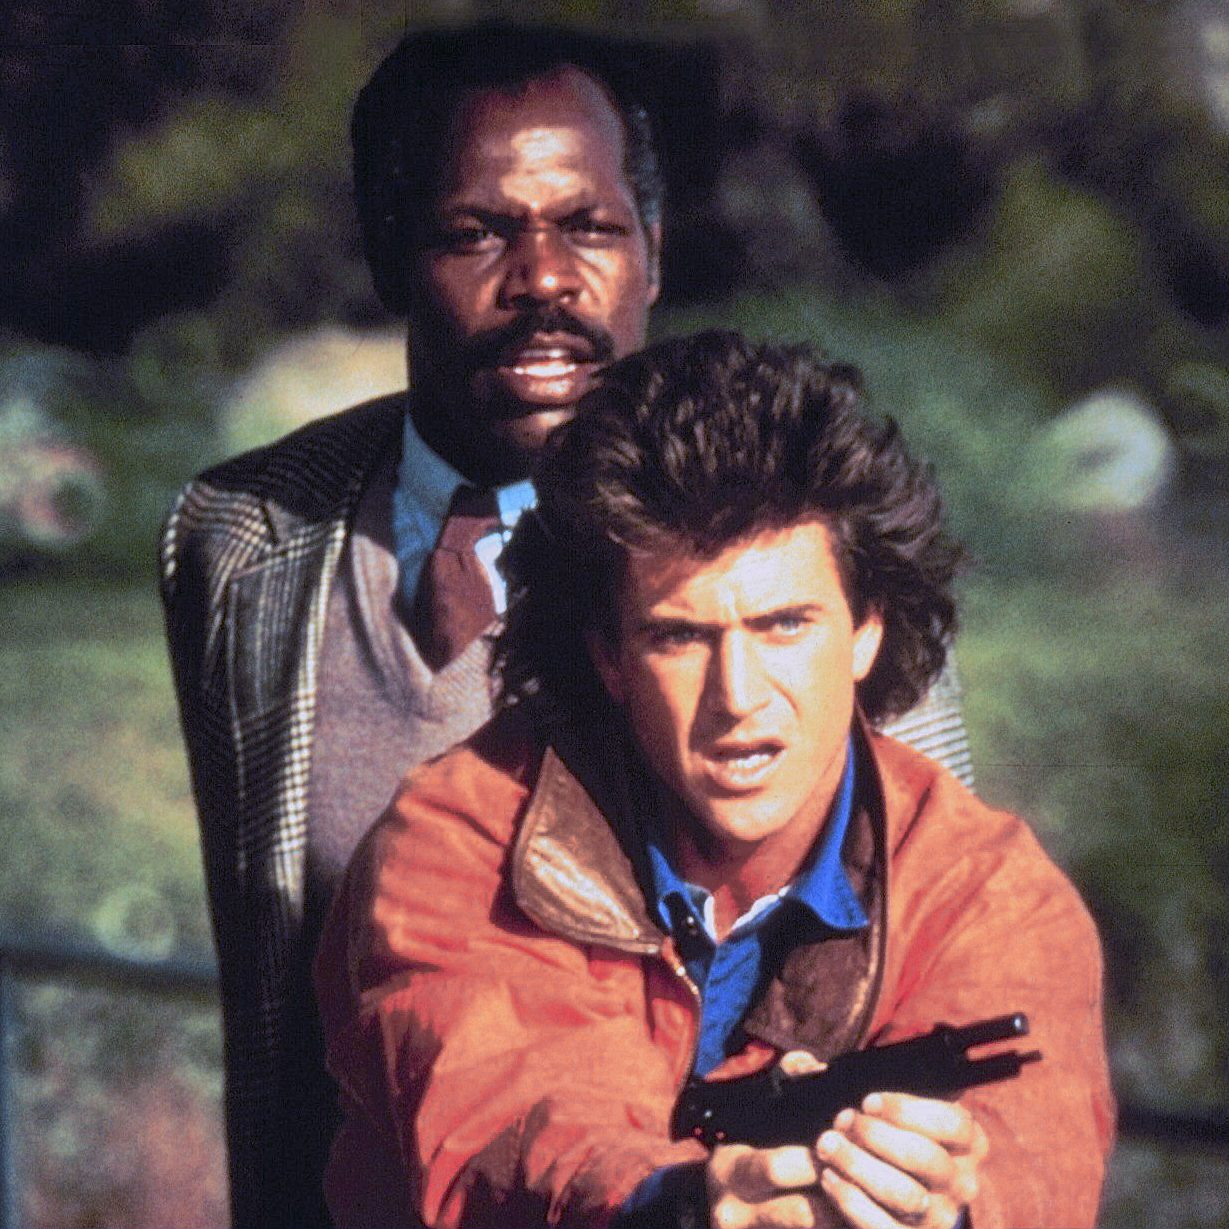 lethal weapon02 e1602836413899 20 Diabolical Facts About 1987's Angel Heart